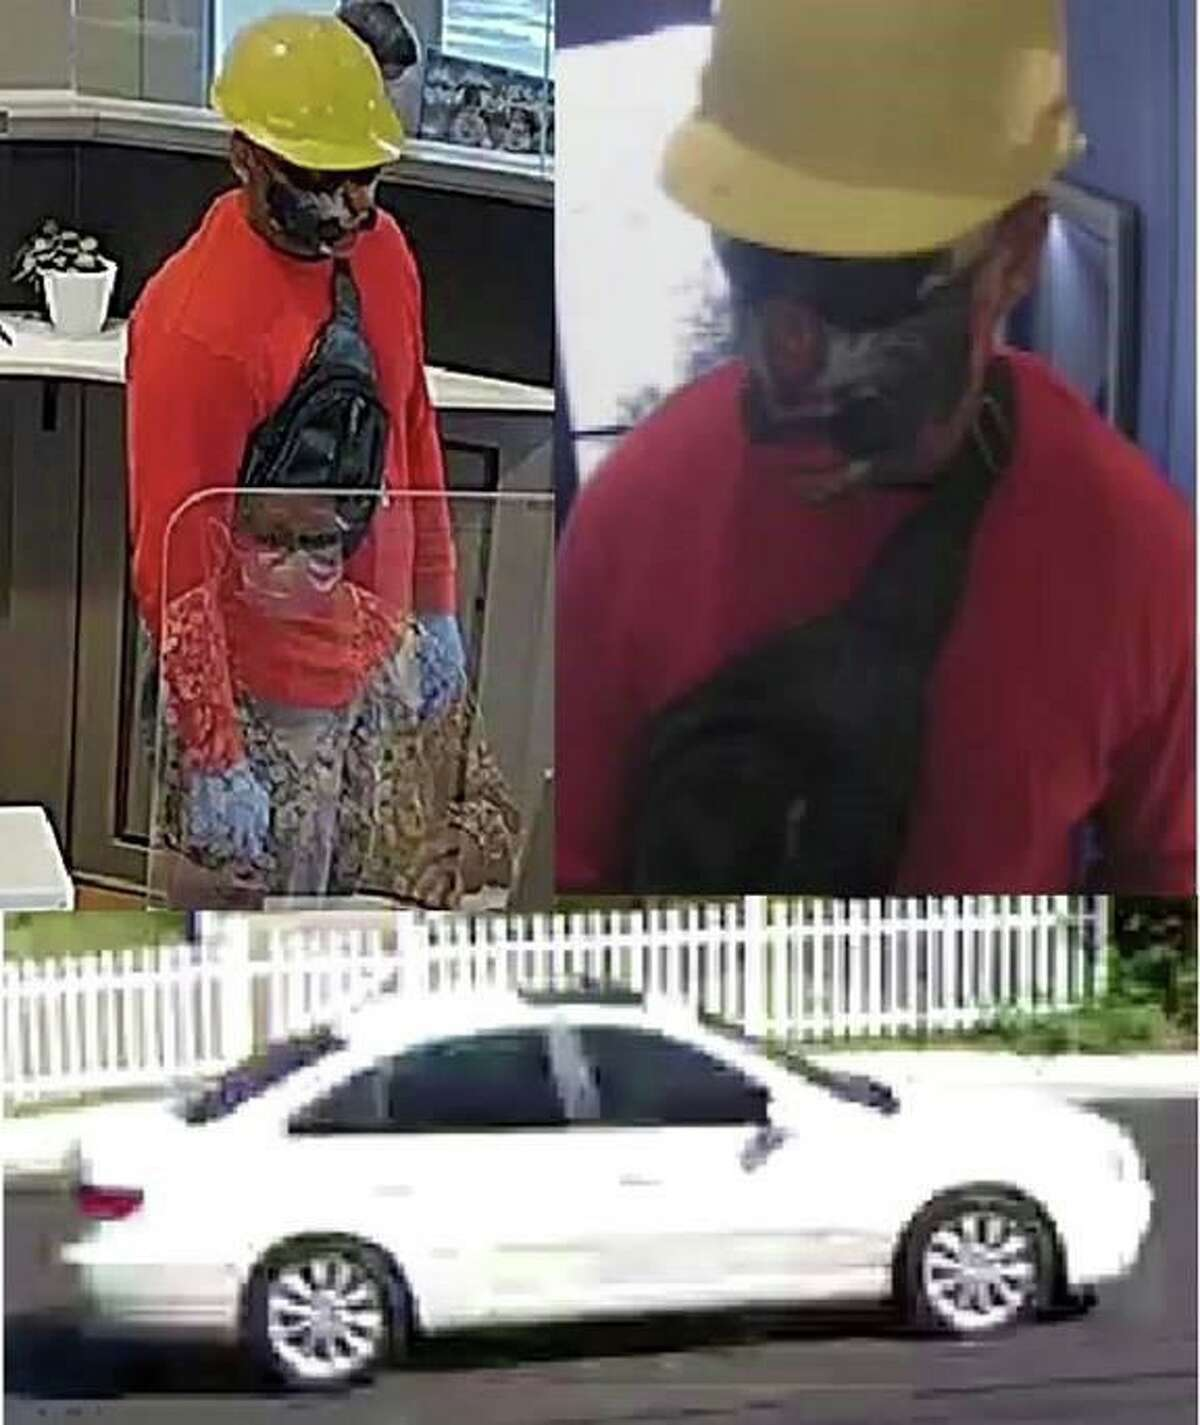 Police are looking for this man who they say robbed a bank in Norwalk Tuesday afternoon. He fled the bank in this white sedan without plates.